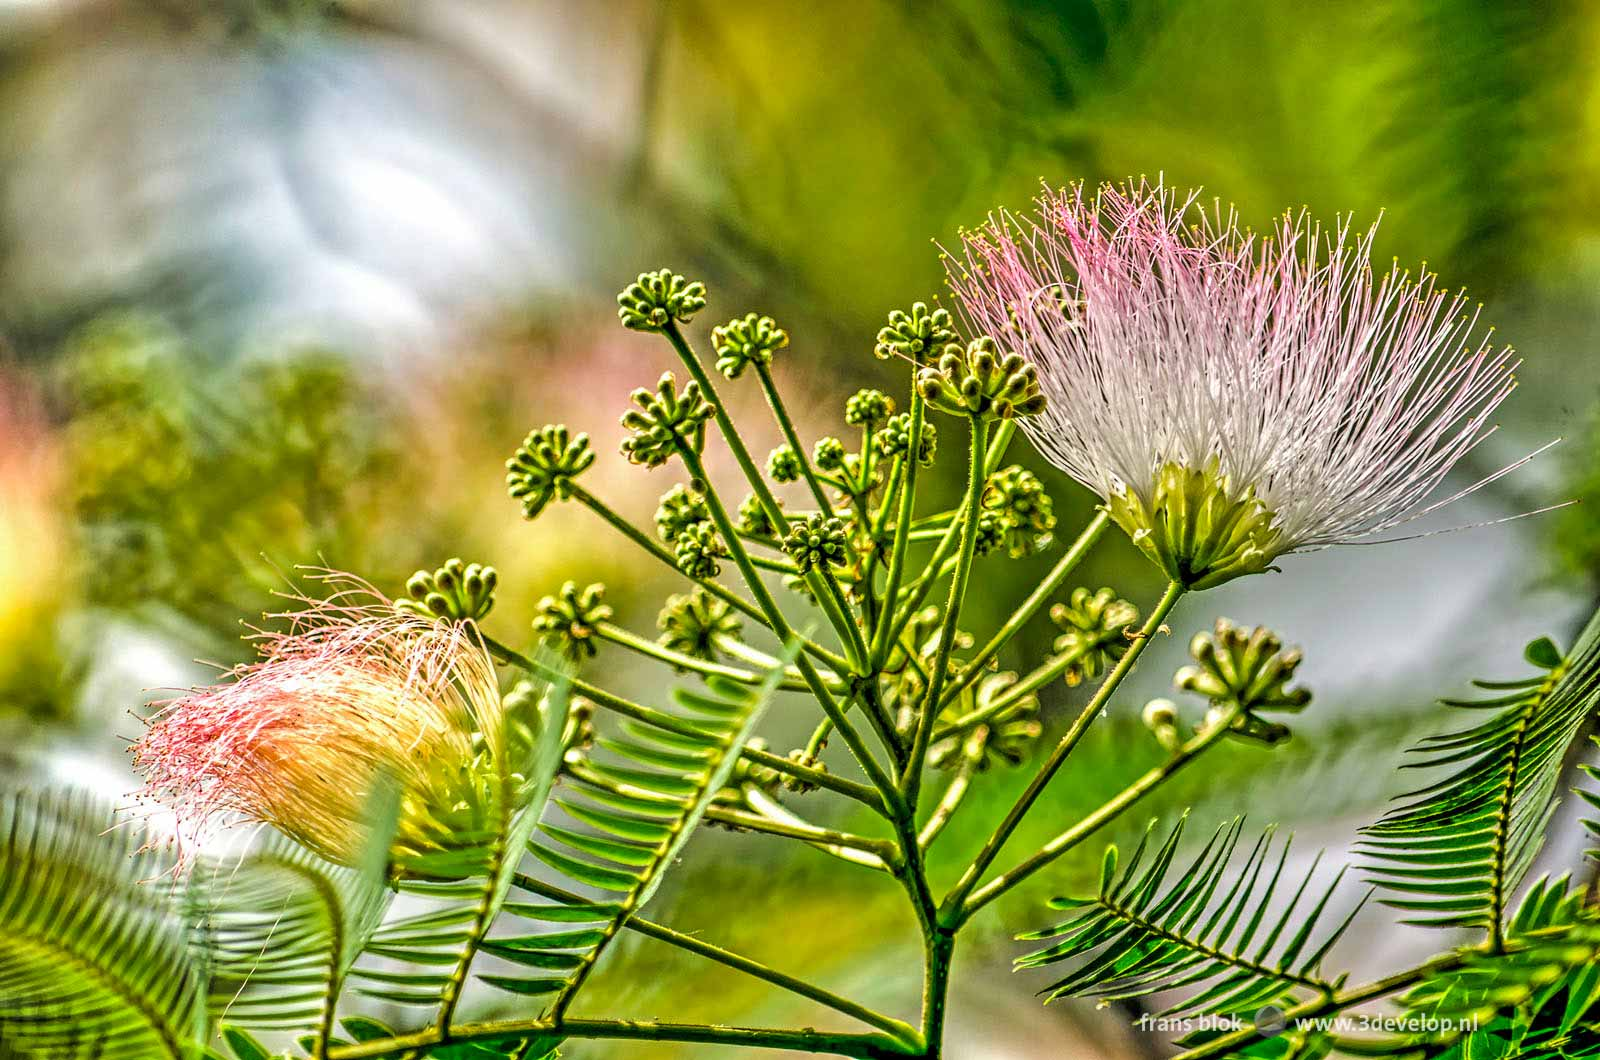 Detail photo of the flowers of an albizia julibrissin, a Persian silk tree